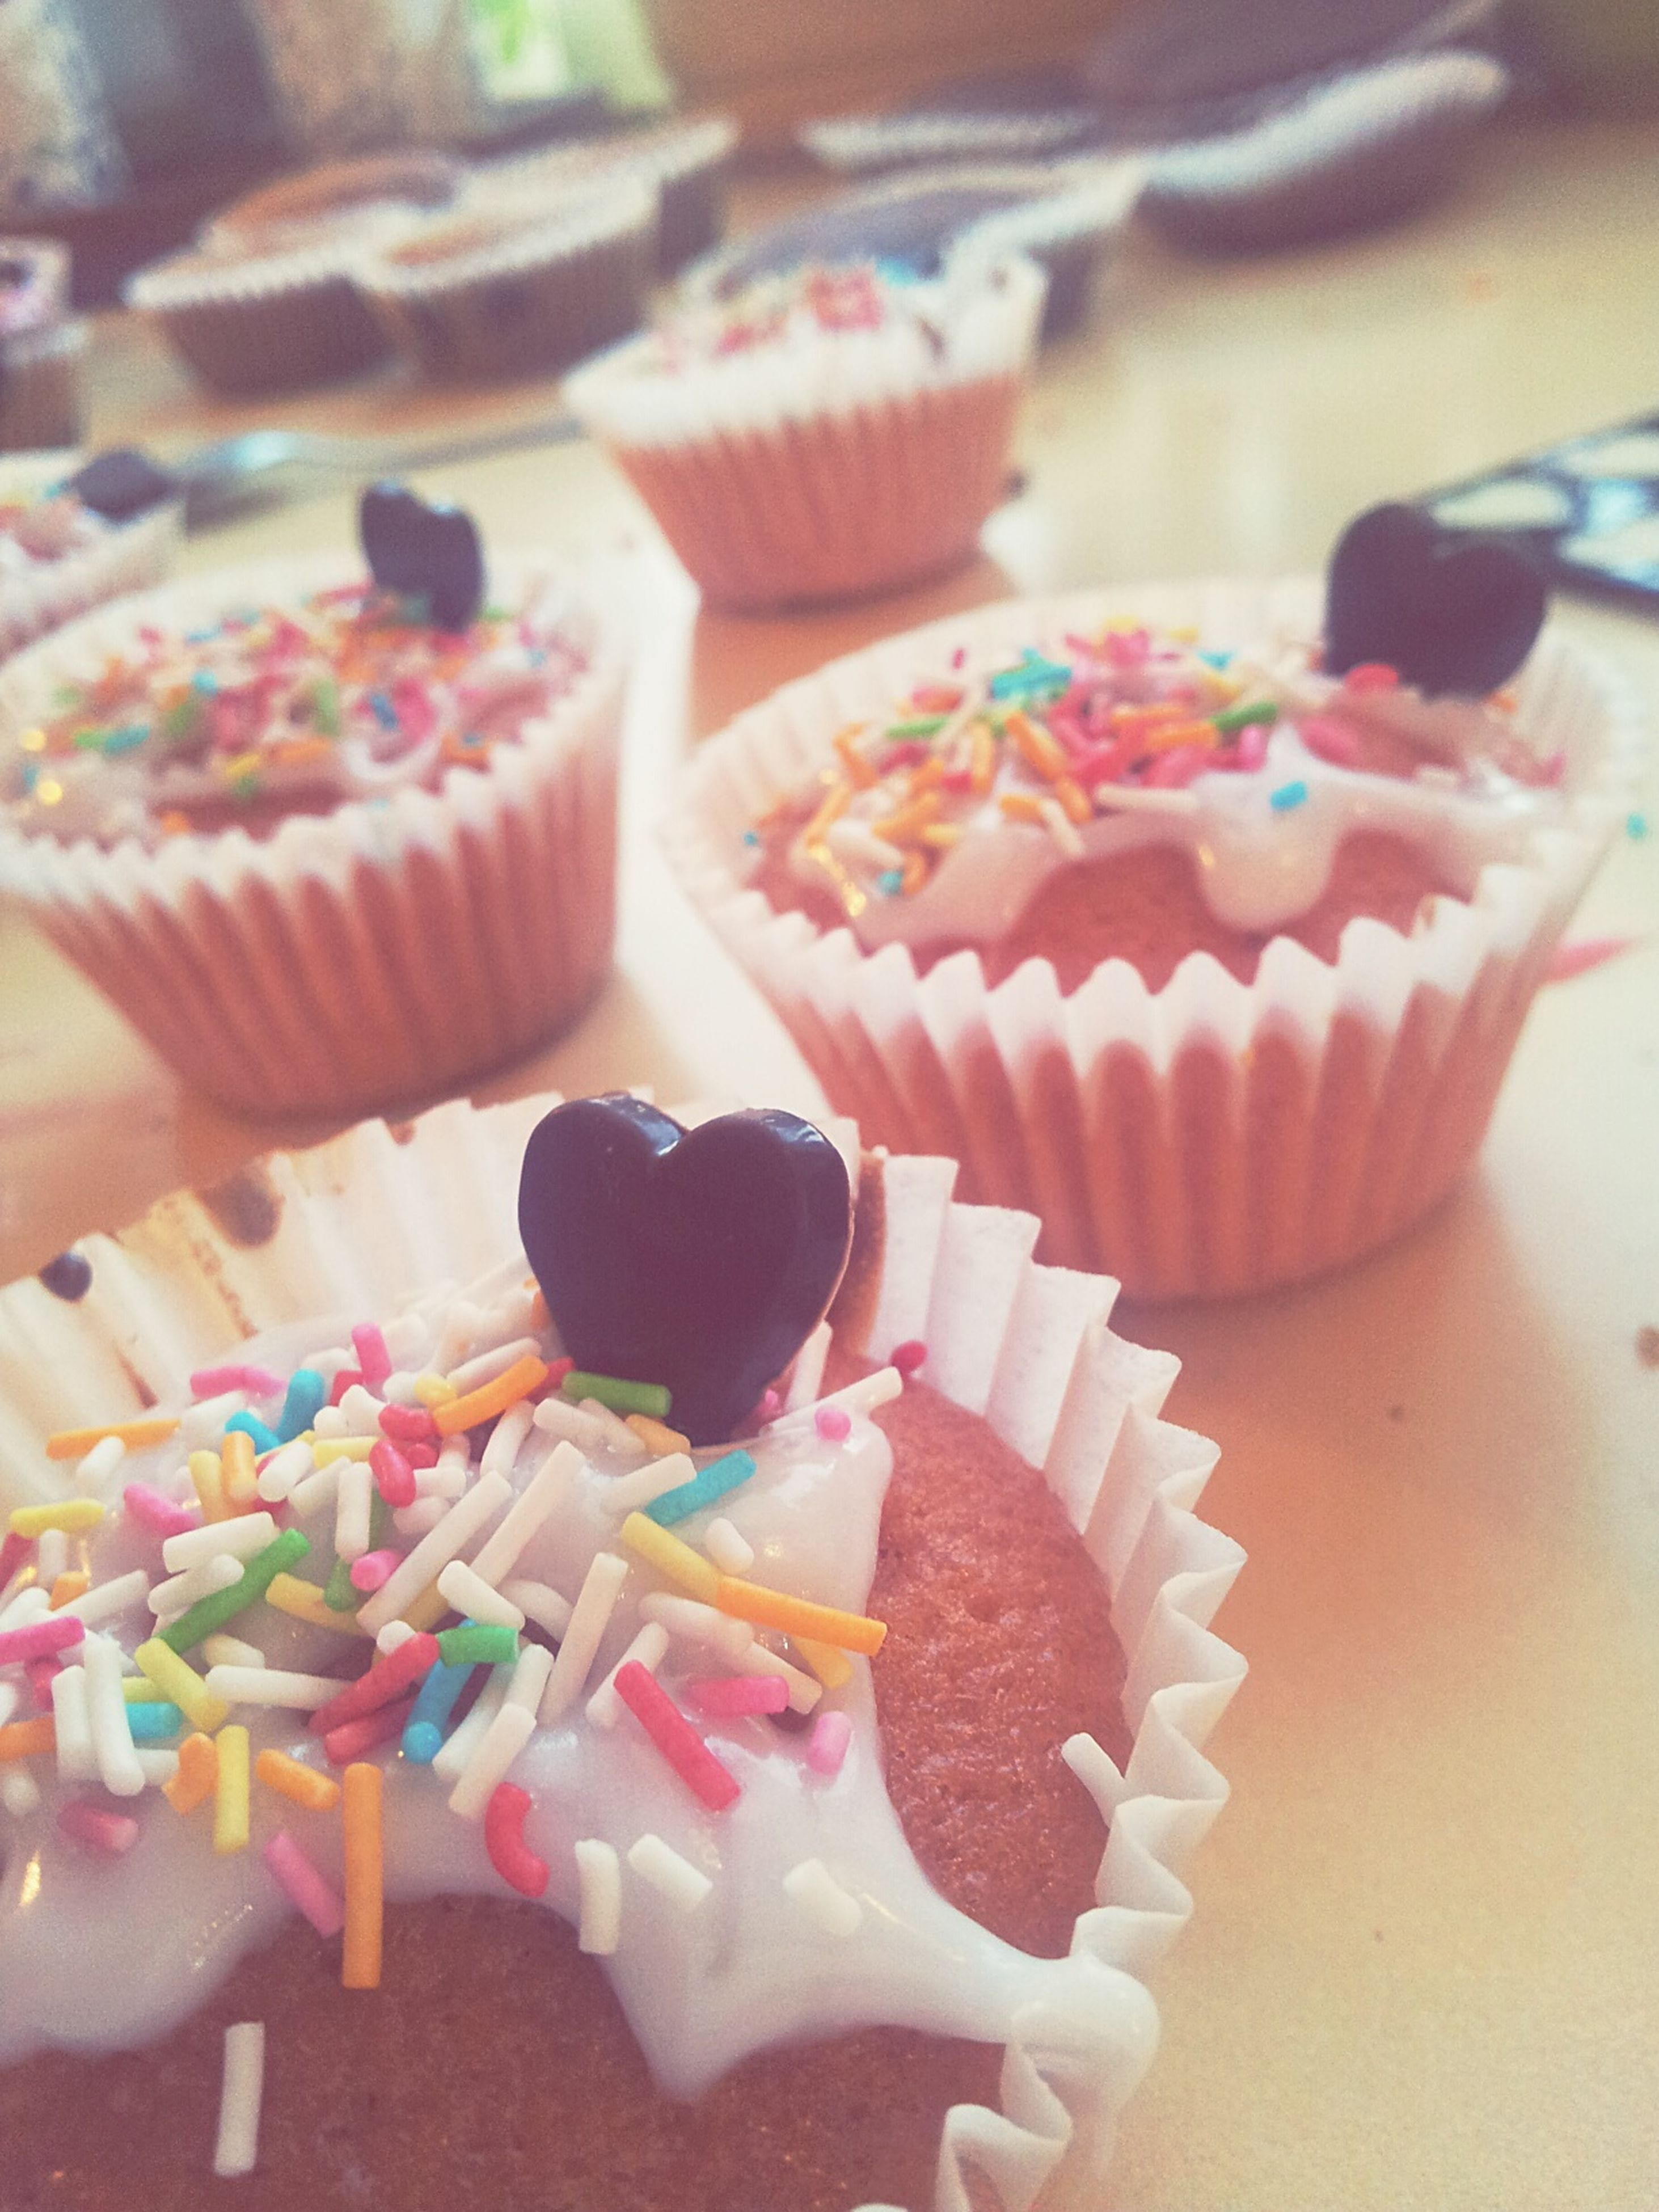 food and drink, sweet food, food, indoors, dessert, freshness, ready-to-eat, indulgence, unhealthy eating, still life, cake, temptation, table, plate, close-up, chocolate, serving size, cupcake, pastry, icing